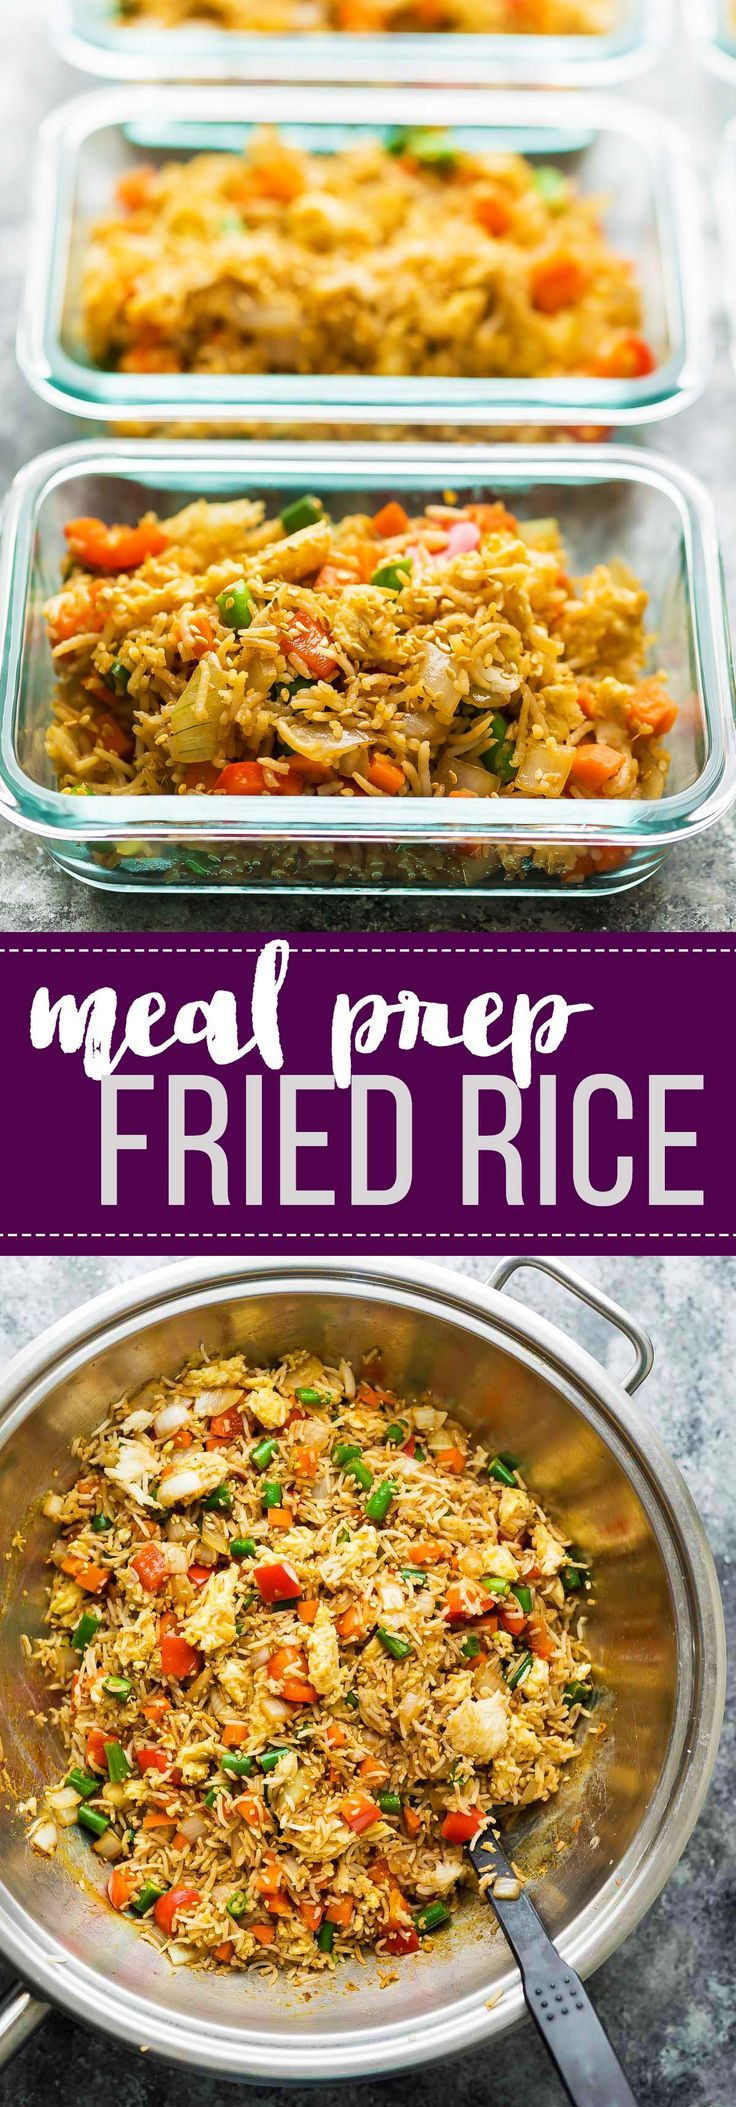 Prep a big batch of this meal prep vegetarian fried rice and stash some in the freezer! Perfect for those days when you don't have lunch planned, or for crazy weeknight dinners.